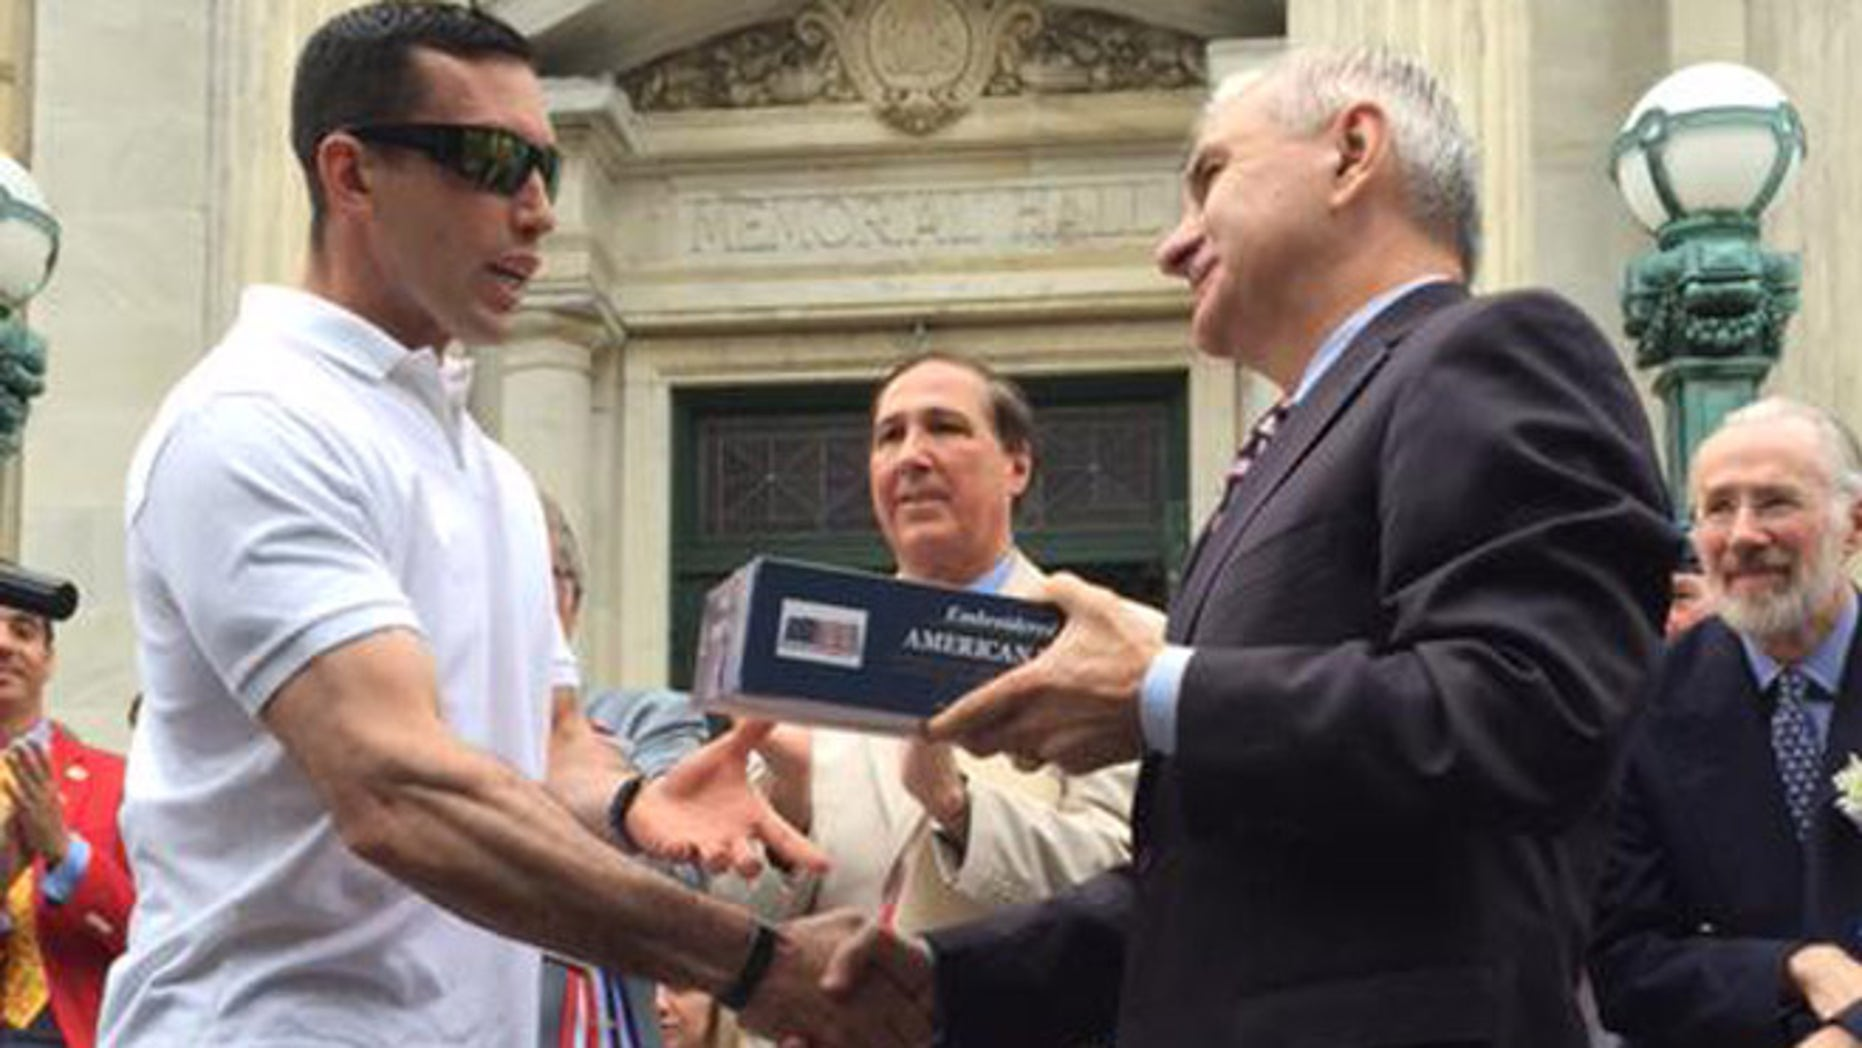 Green Beret P. Andrew McKenna, left, receives a flag that flew over the U.S. Capitol from Sen. Jack Reed (D-R.I.) at Bristol, R.I., Fourth of July parade. (Photo courtesy of Reed) .